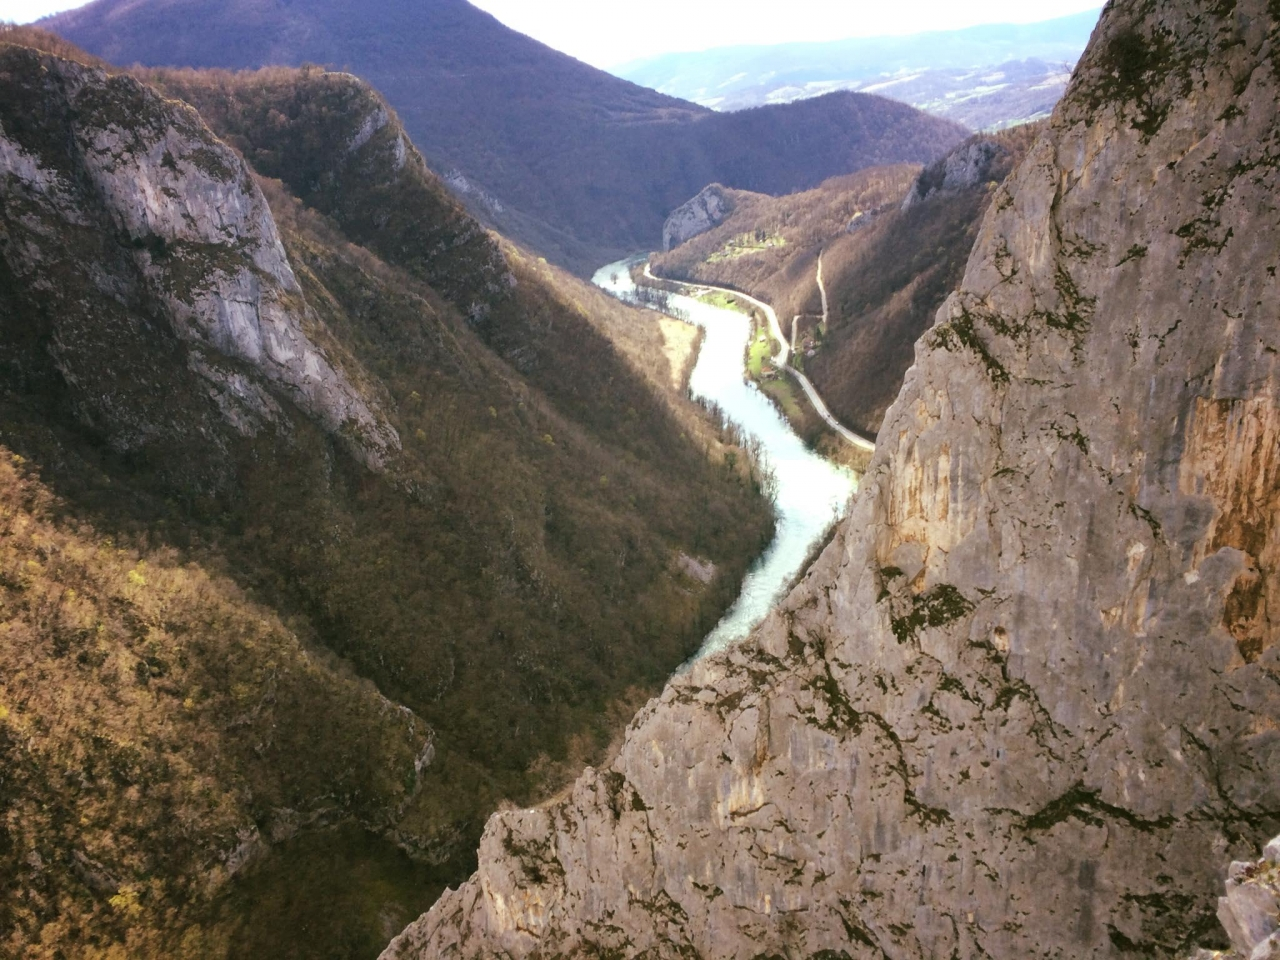 A picture from Tijesno Canyon / Bosnia and Herzegovina by Domagoj Pavin